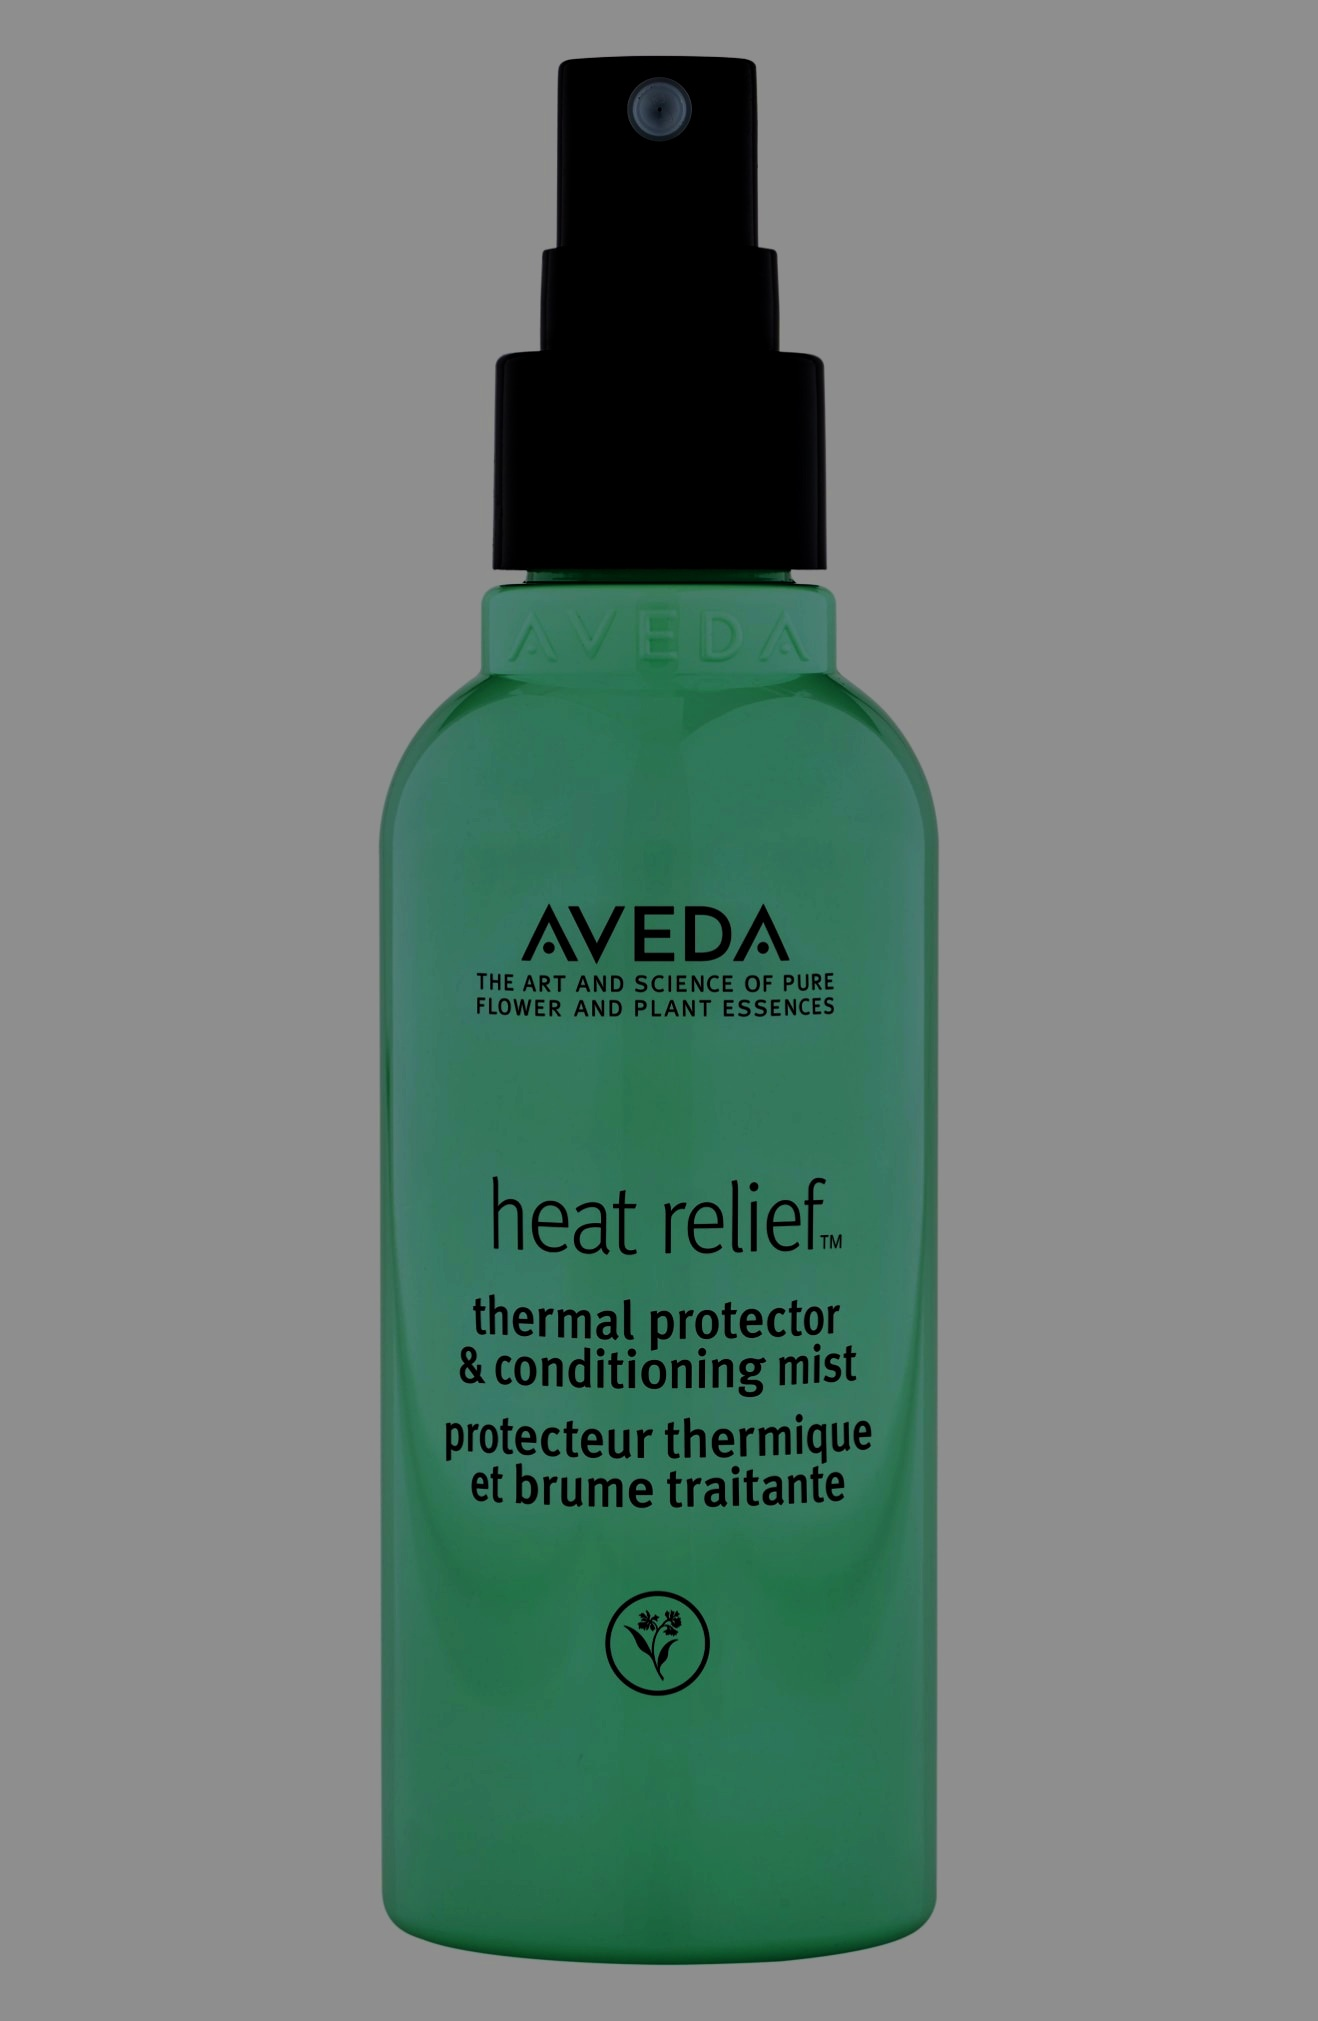 The name says it all, don't try to hide from this ray of sunshine. We know you need it because if your like the rest of us,your hair gets more heat than a Florida Summer Beach.  This 97% naturally derived product protects hair from heat during your second day re-curl or straightening. Another plus… you will smell like Aveda all day because it has our signature Shampure aroma. It will protect your hair from heat at up to 450 degrees. Wow, that's hot! It's super easy, spray lightly onto your dry hair about 7 inches away. Focus on mid-lengths to ends. Heat-style as however you like. It conditions and protects. Too good to be true? Nope, just more Aveda magic.